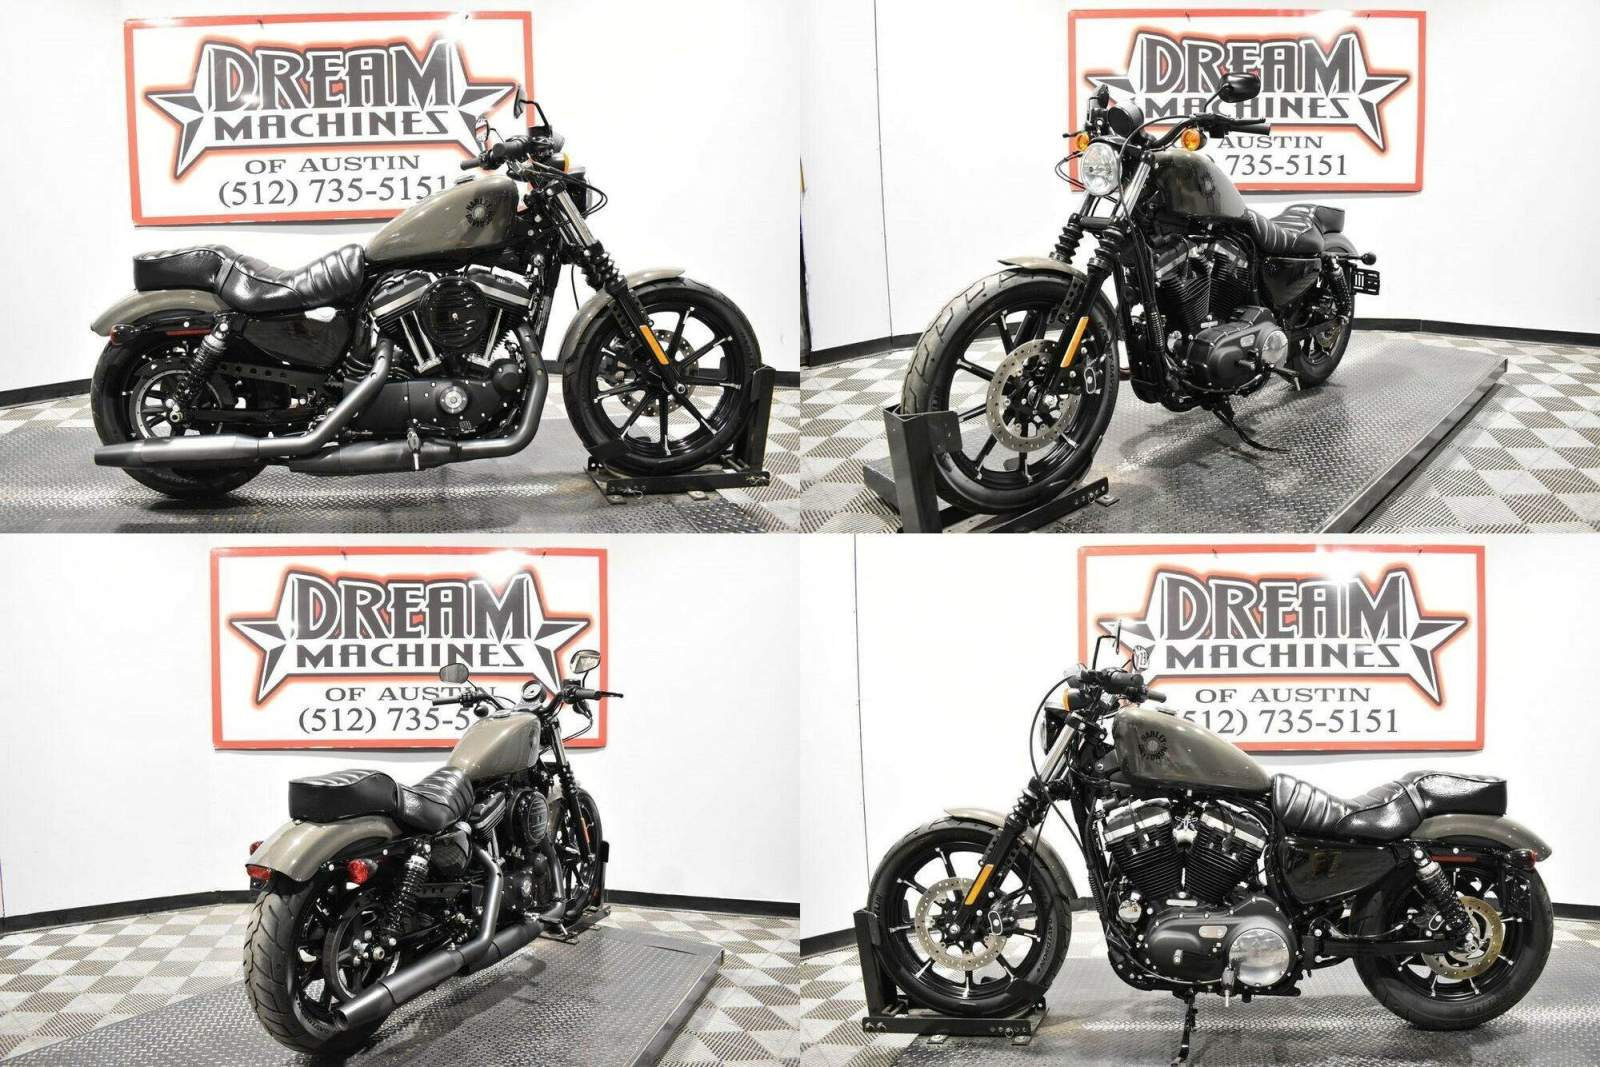 2019 Harley-Davidson XL 883N - Sportster Iron 883 Gray used for sale near me